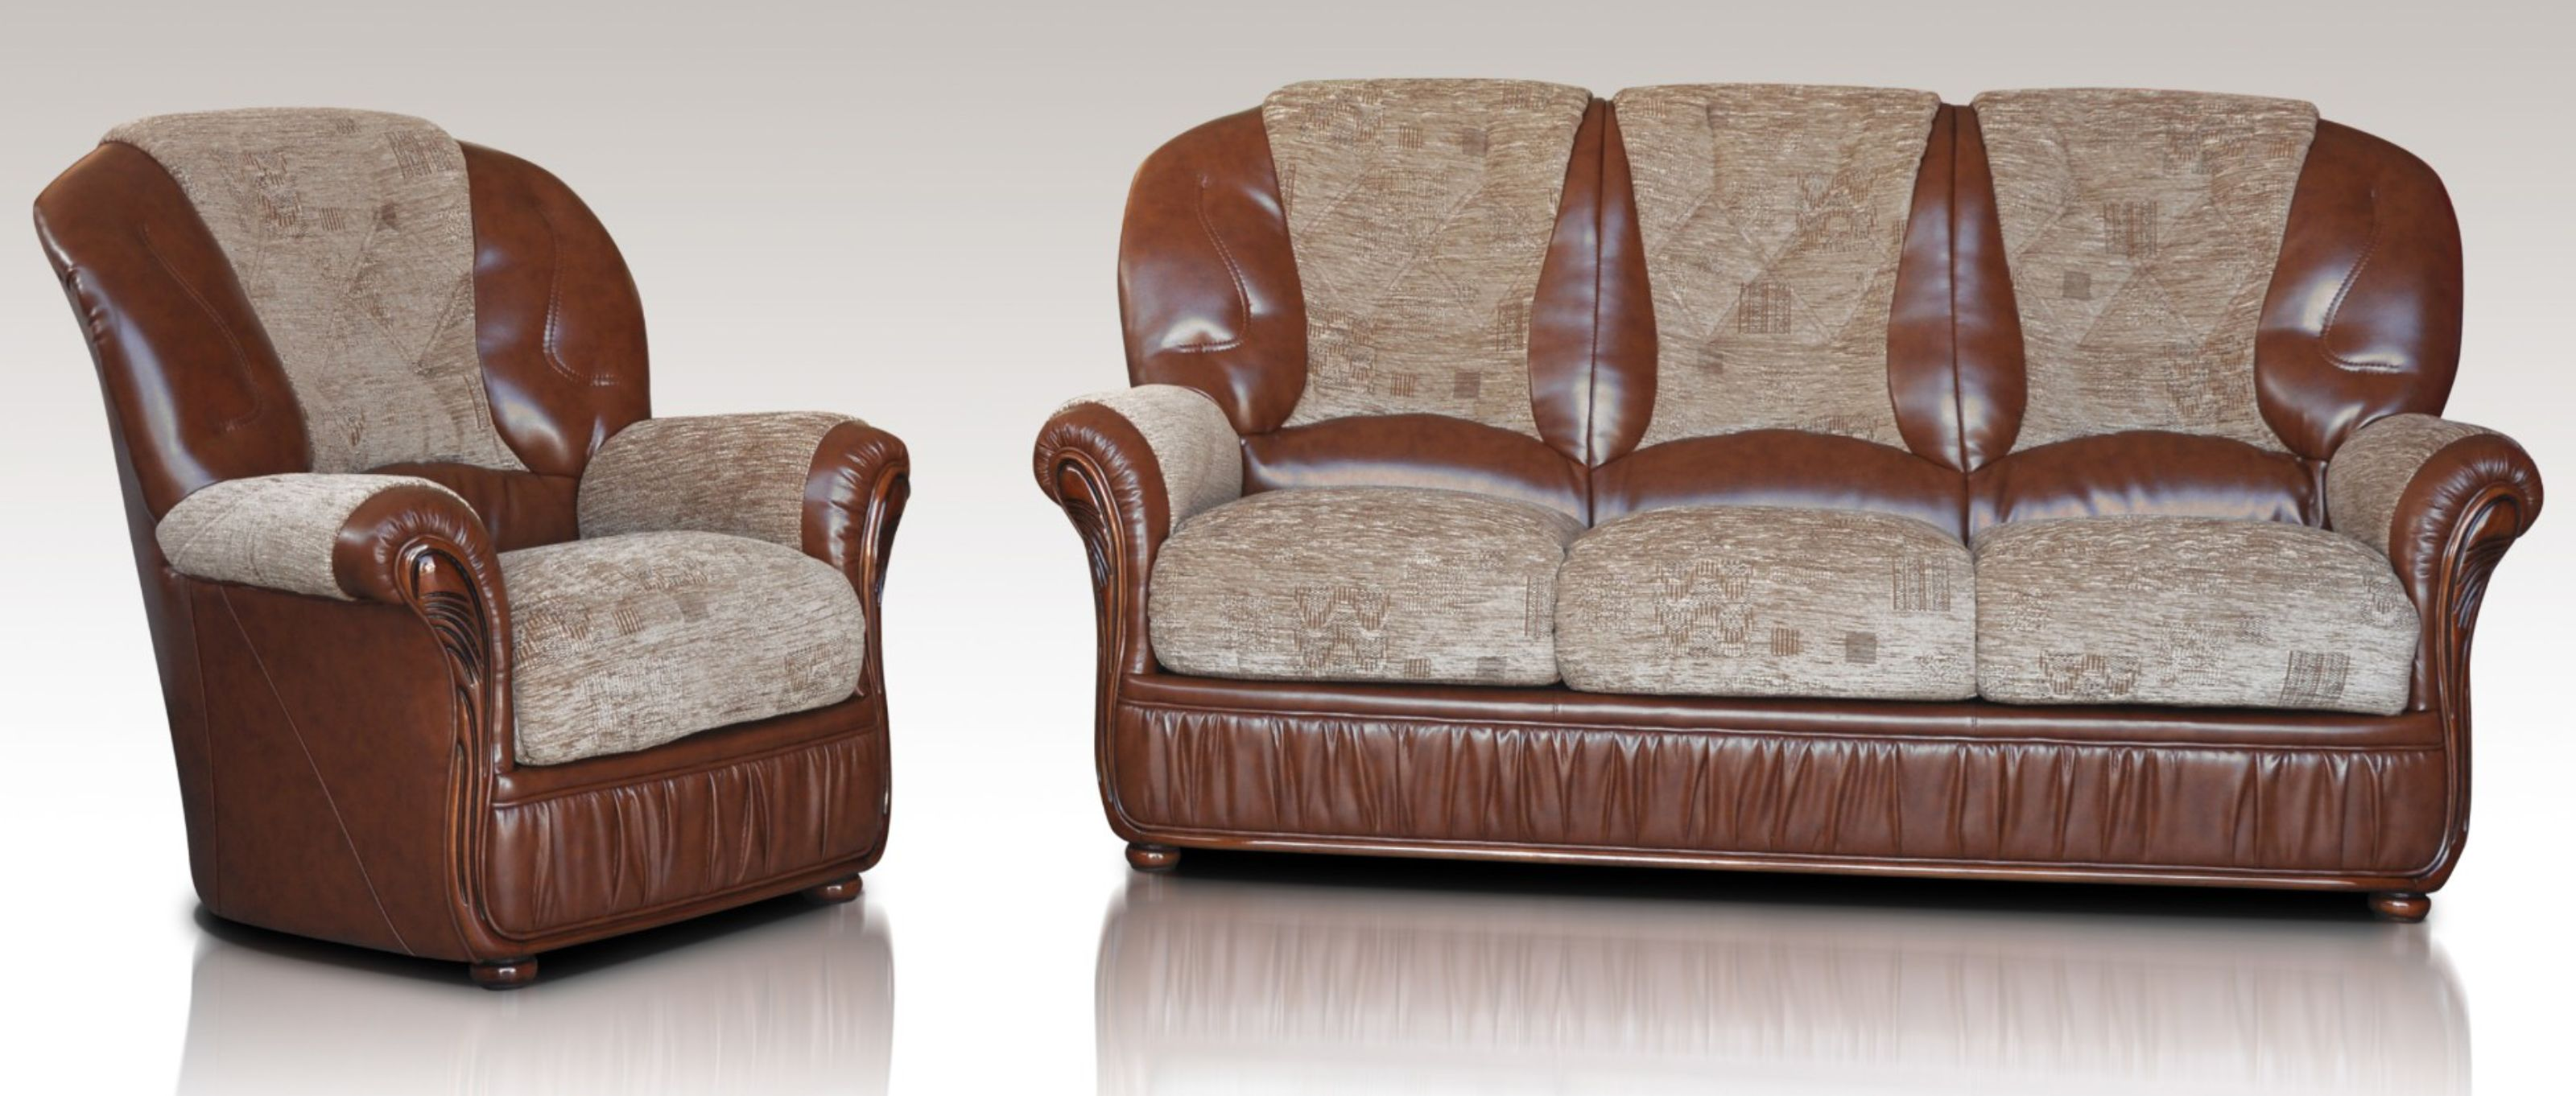 - Kansas 3+1+1 Genuine Italian Brown Leather Fabric Sofa Suite Offer